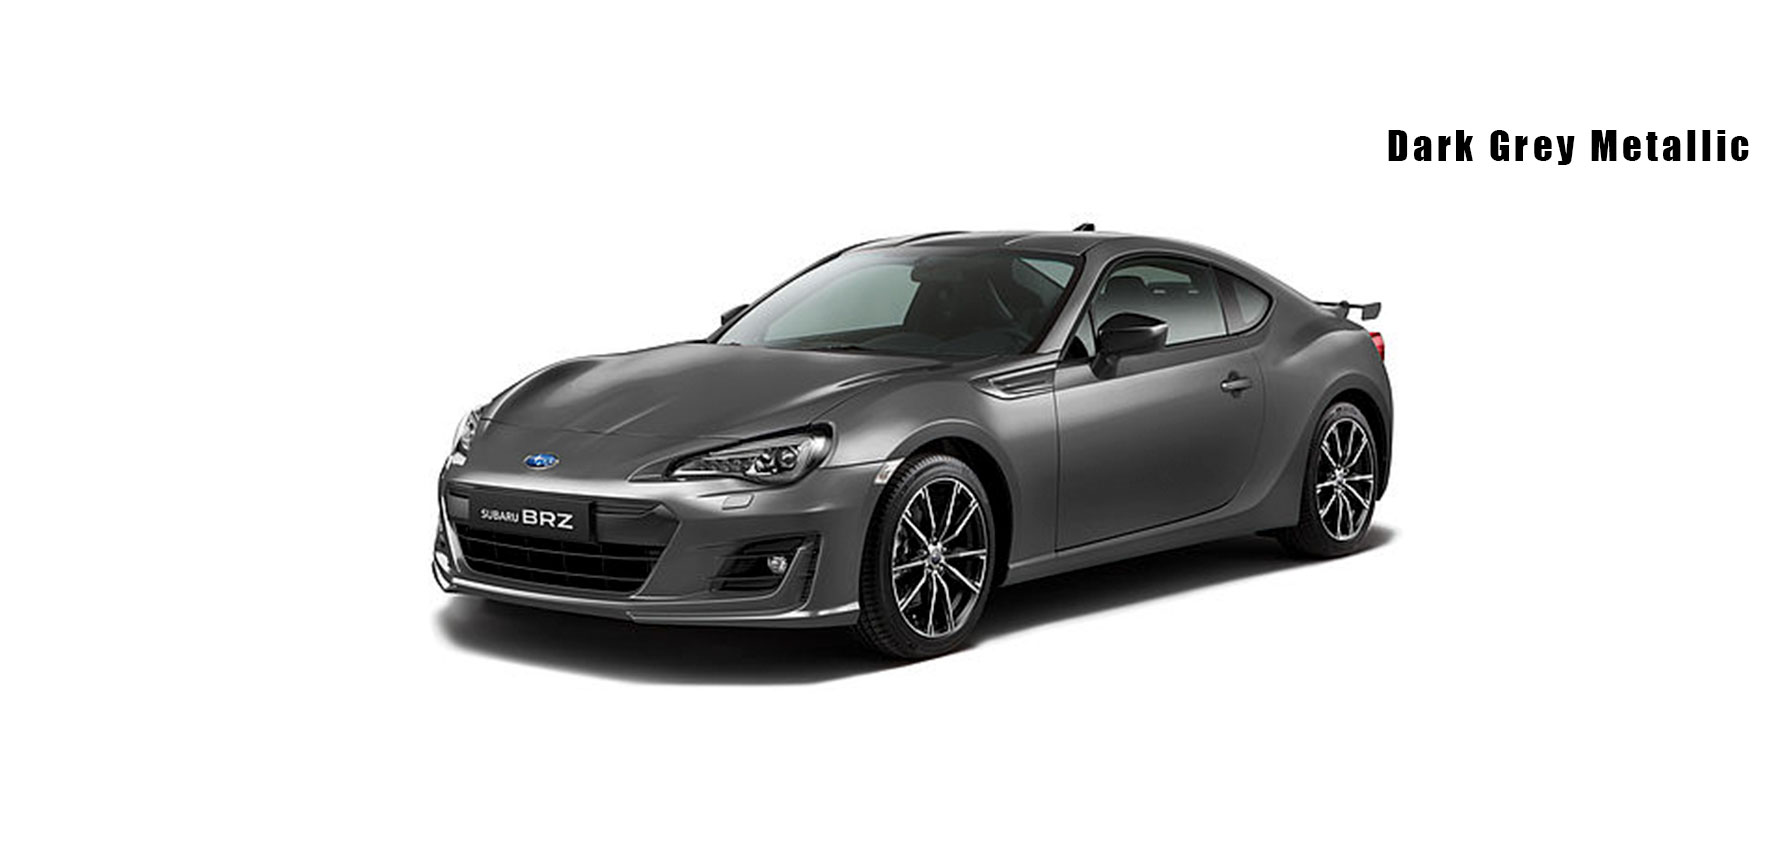 5-subaru-brz-Dark-Grey-Metallic-vercelli-autotrend